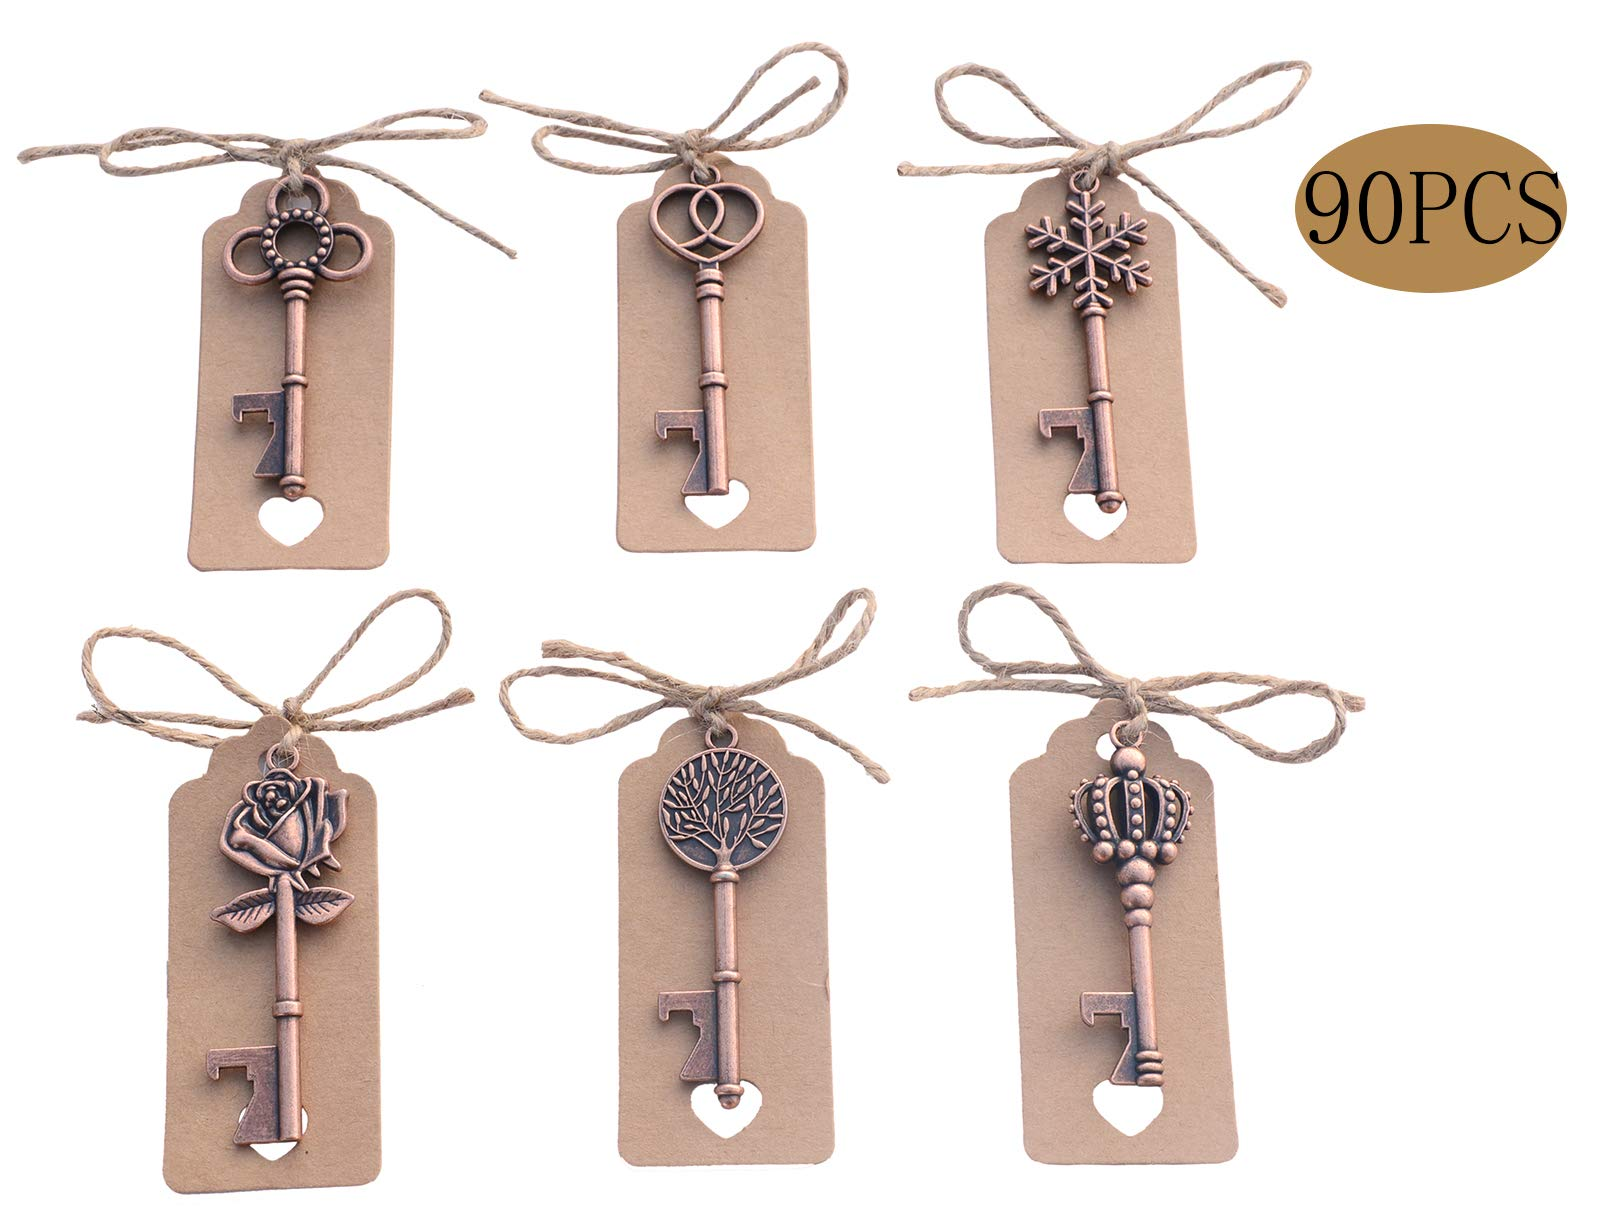 Yansanido Pack of 90 Mixed 6 Styles Skeleton Key Bottle Opener with Escort Tag Card and Twine for Wedding Favors for Guests Party Favors (90pcs mixed 6 styles Copper) by Yansanido